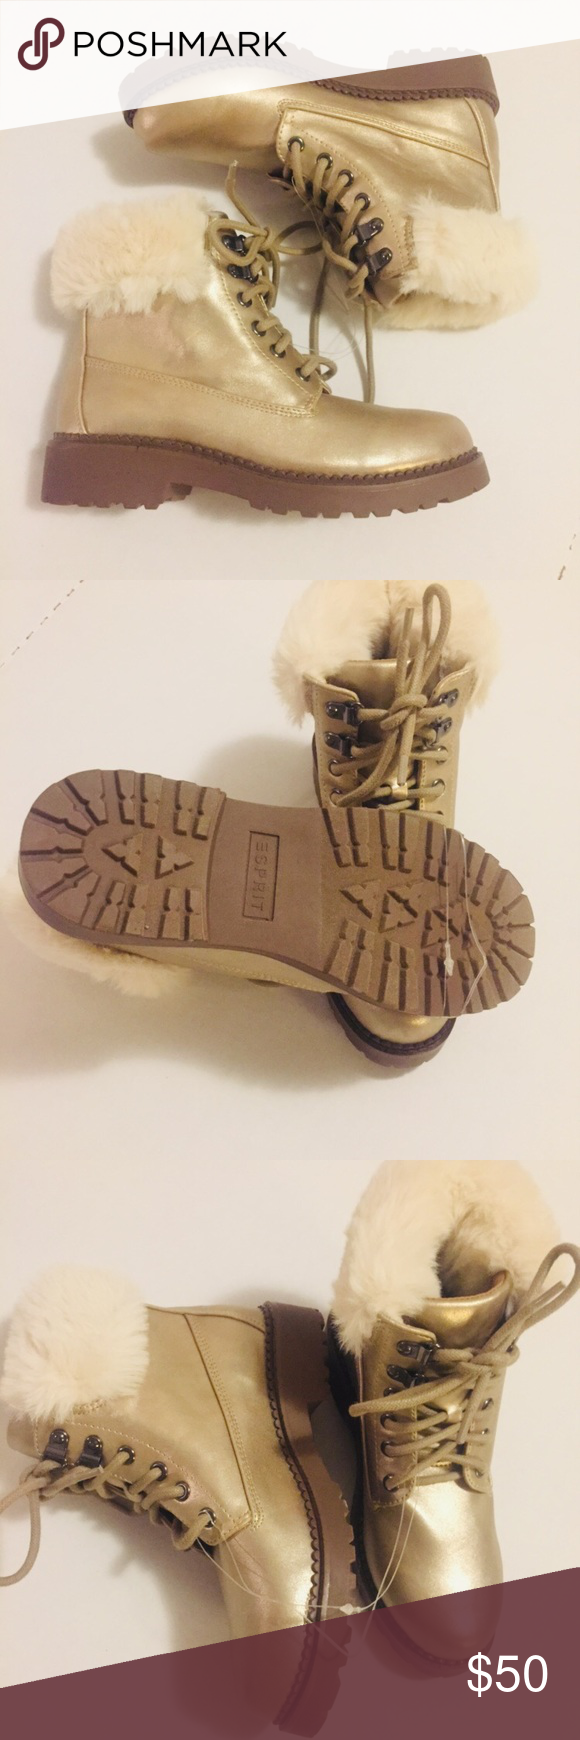 """Booties With Cream Fur Ankle Boots String Still Attached Never Worn Faux Leather Upper Round Toe Cushioned Footbed Approx 1.5""""Molded Block Heel Size 6 Shoes Ankle Boots & Booties"""